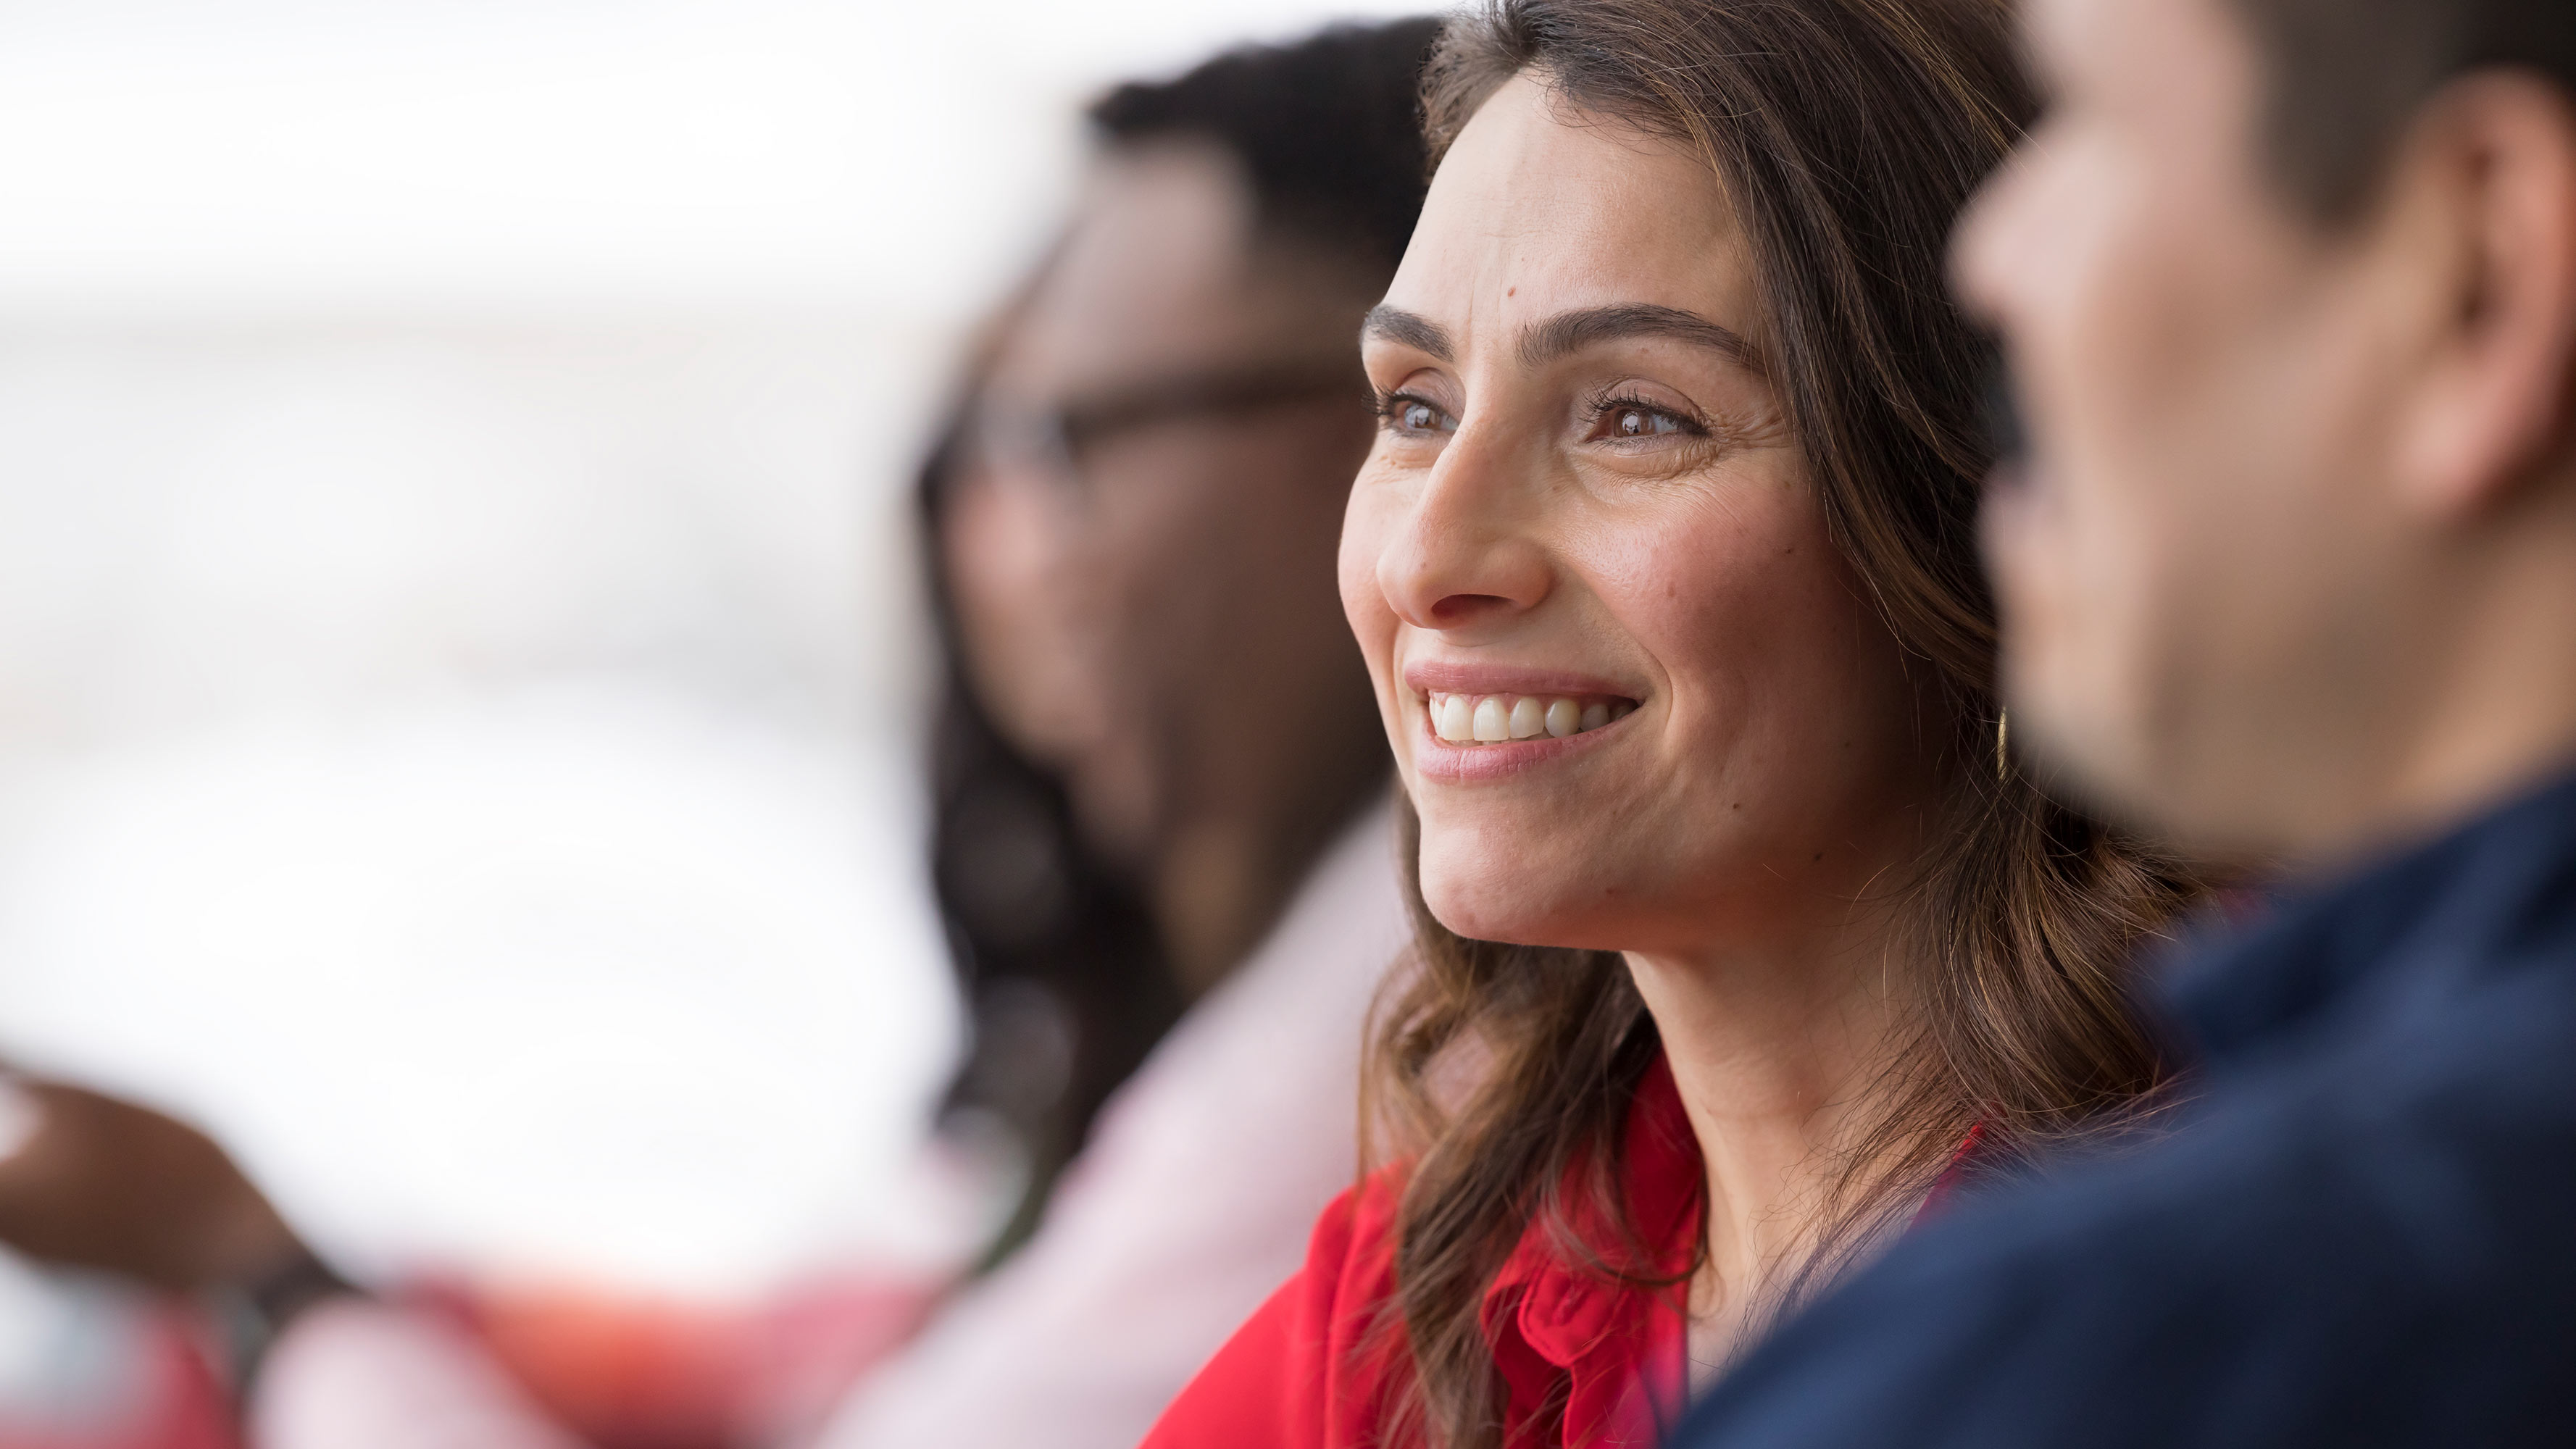 A close-up photo shows a female CVS Health employee smiling while sitting around a conference table at the company's Woonsocket, Rhode Island headquarters.